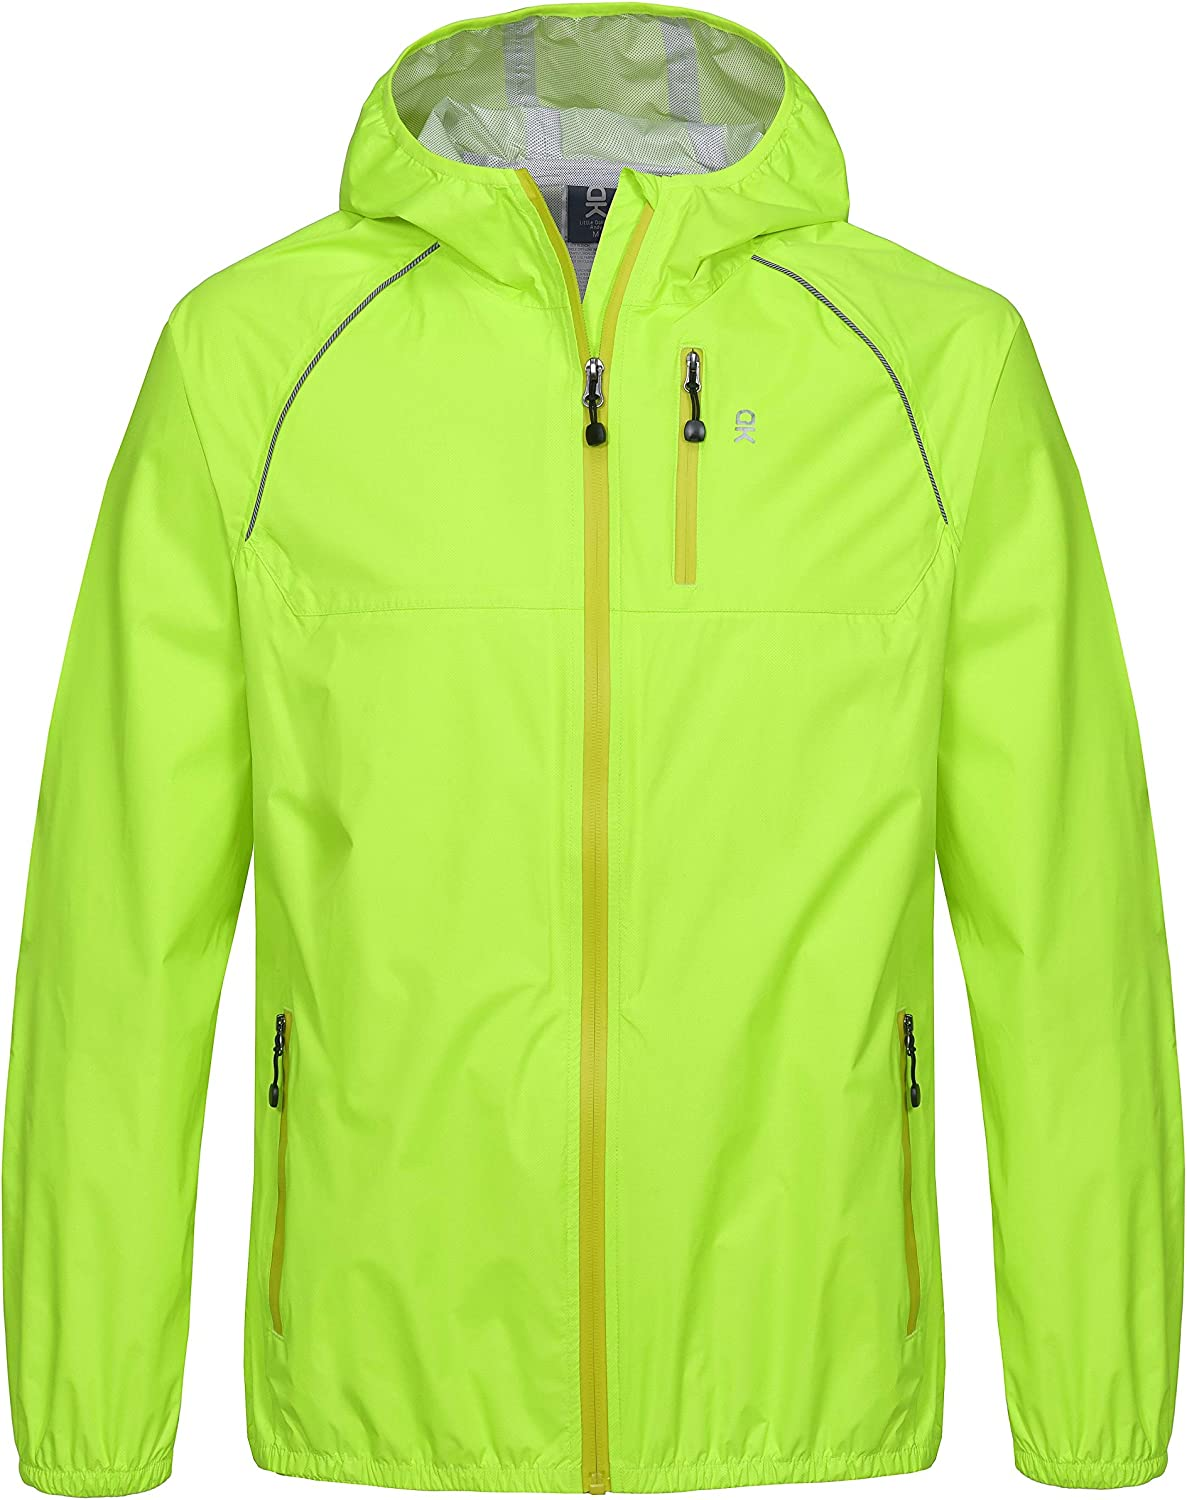 Windproof and Waterproof Ultralight Packable Little Donkey Andy Womens Rain Cycling Bike Jacket with Hood